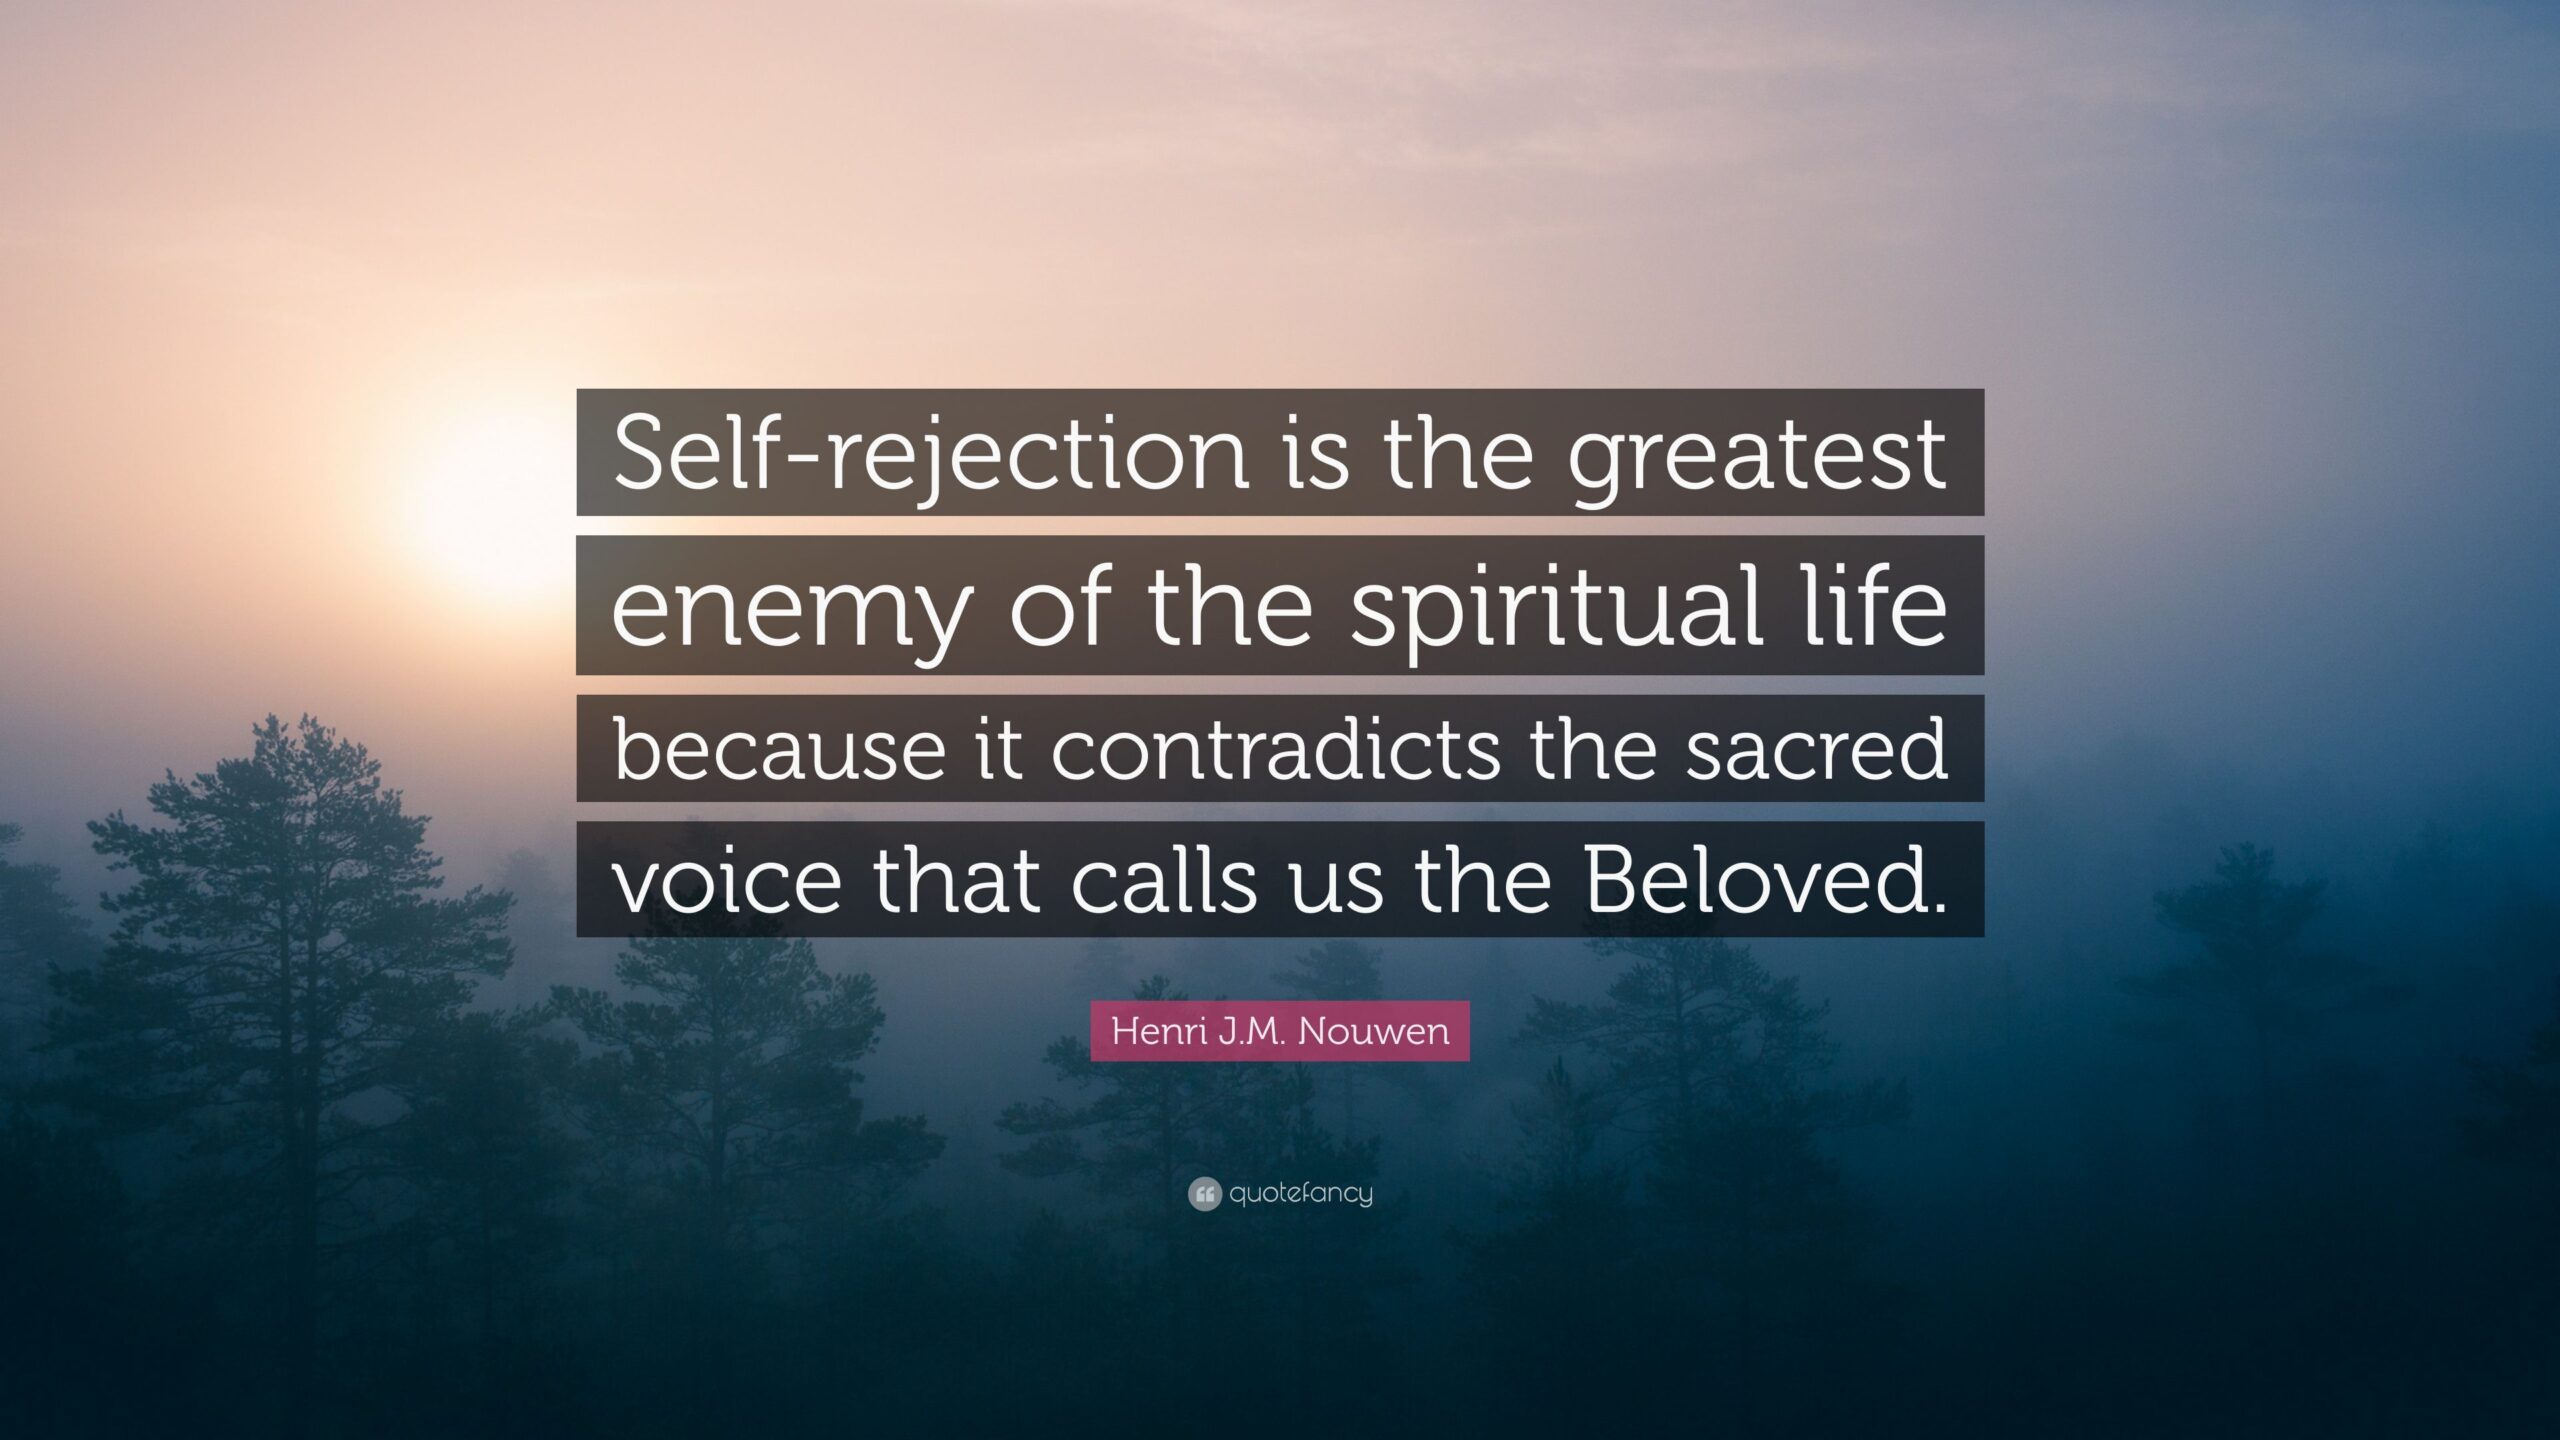 self-rejection